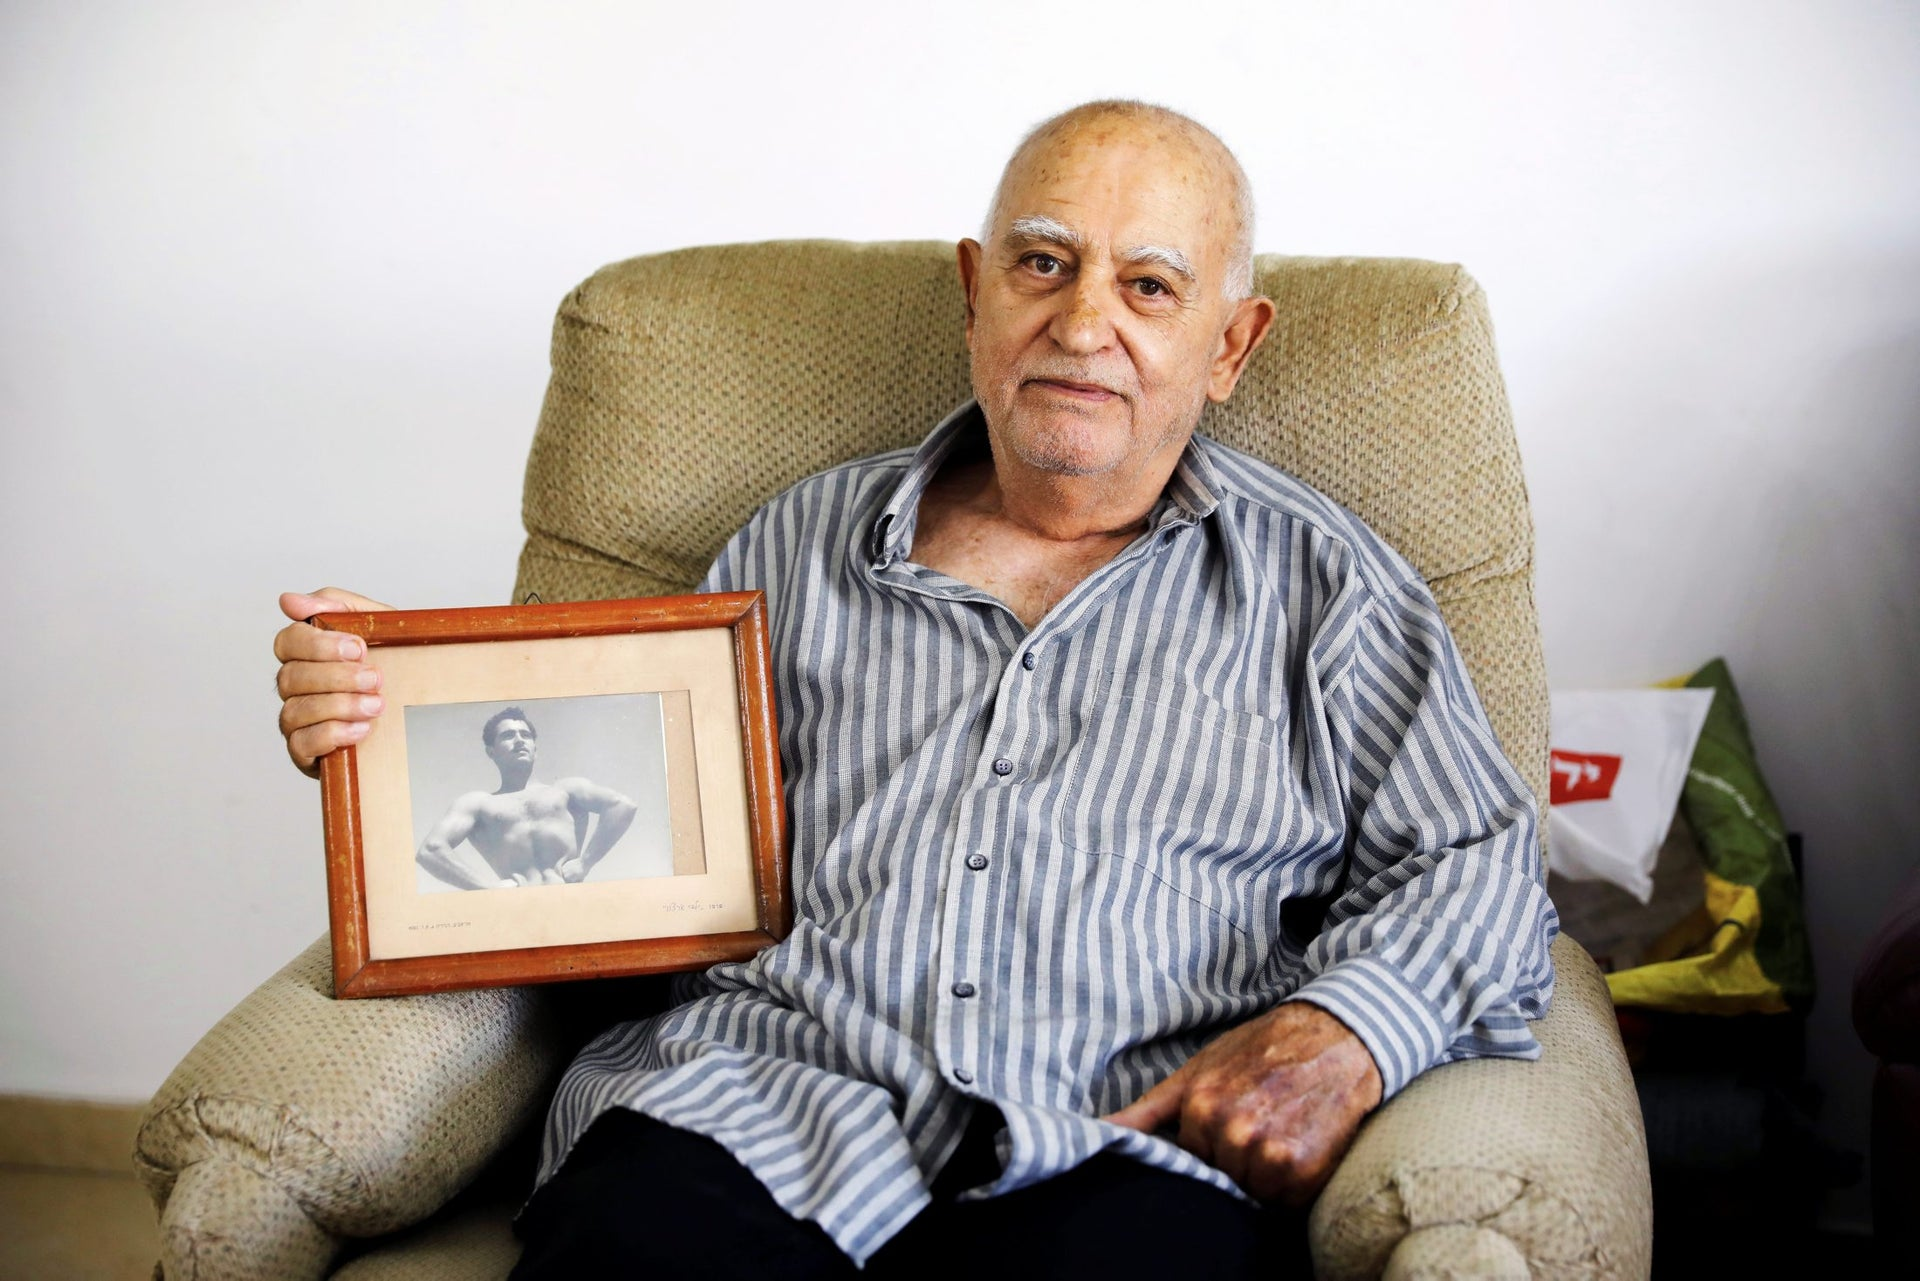 Aharon Ben Hur, 84, who immigrated from Iraq to Israel in 1951, holds an old photo of himself in his house in Rehovot, Israel, April 16, 2018.